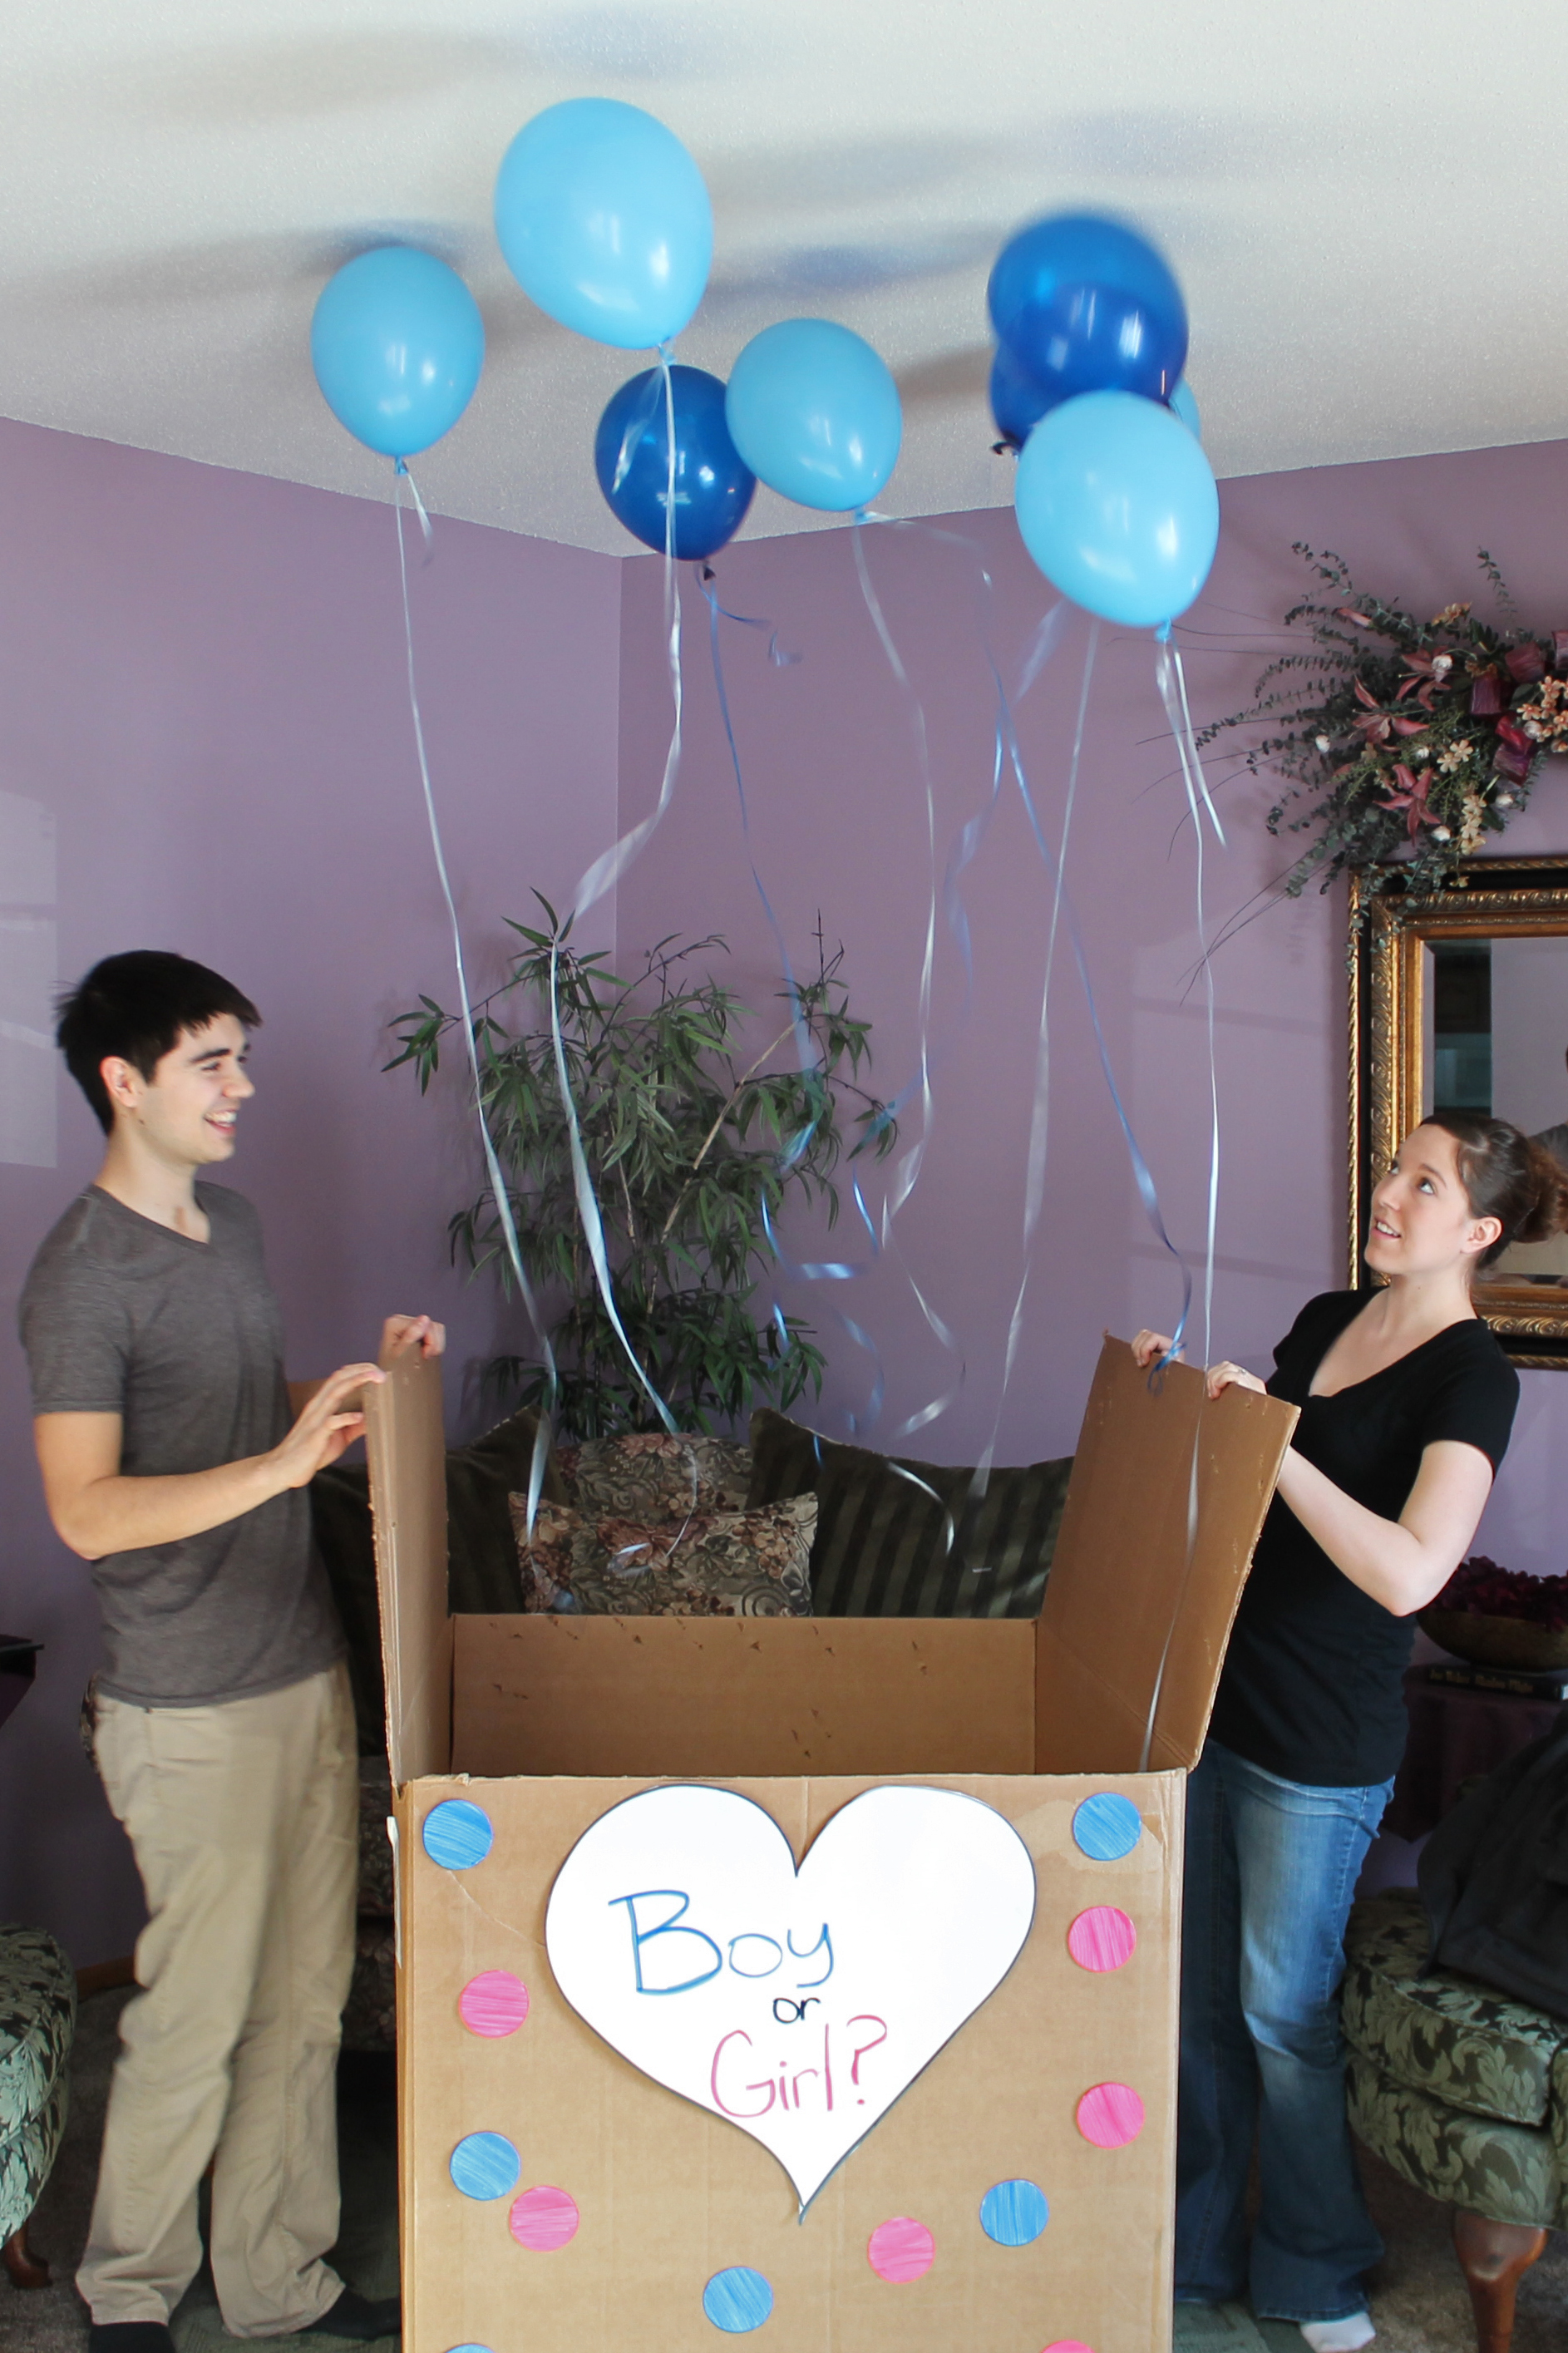 We're having a boy!